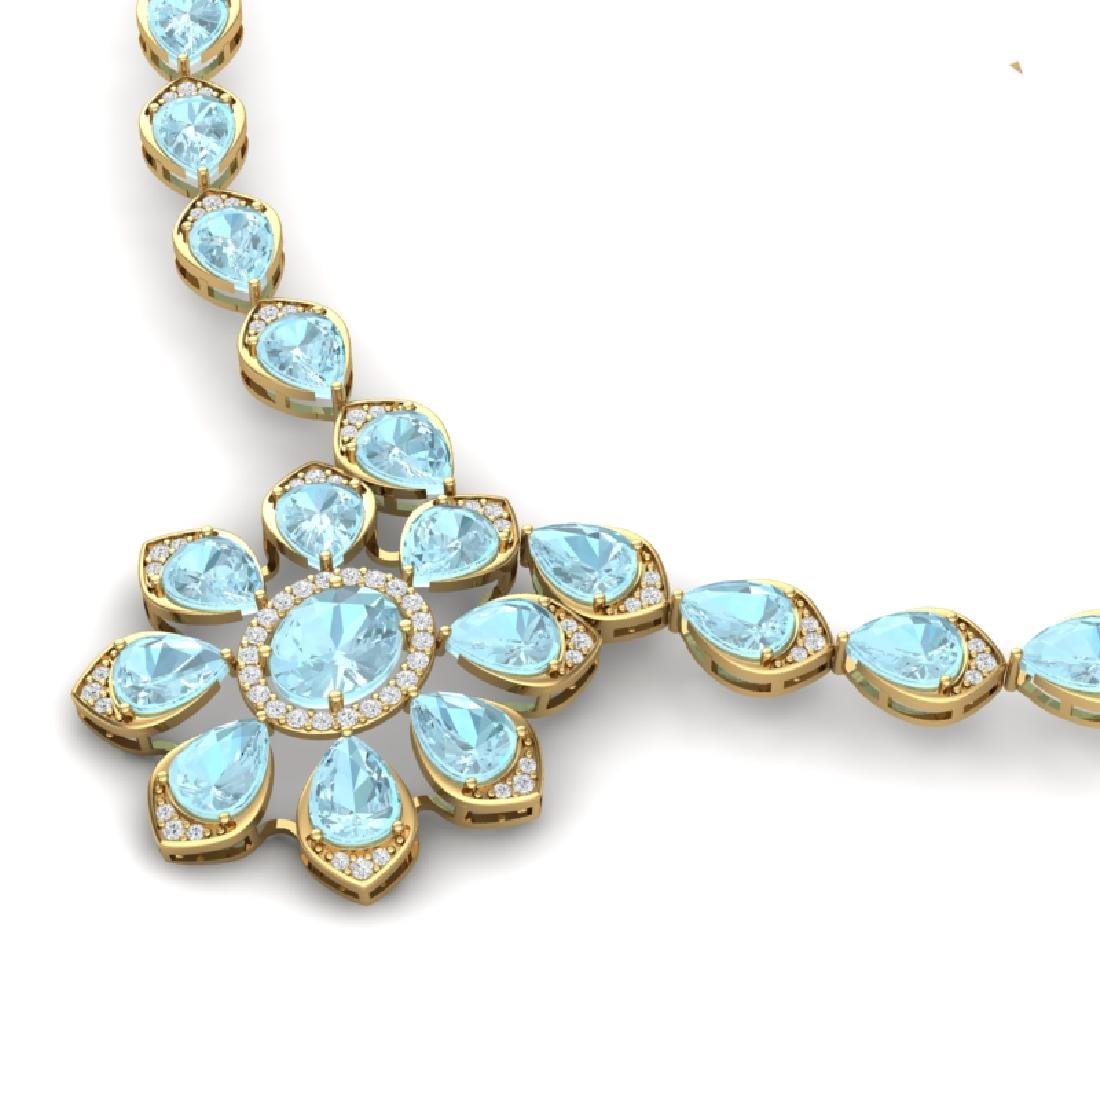 29.34 CTW Royalty Sky Topaz & VS Diamond Necklace 18K - 2